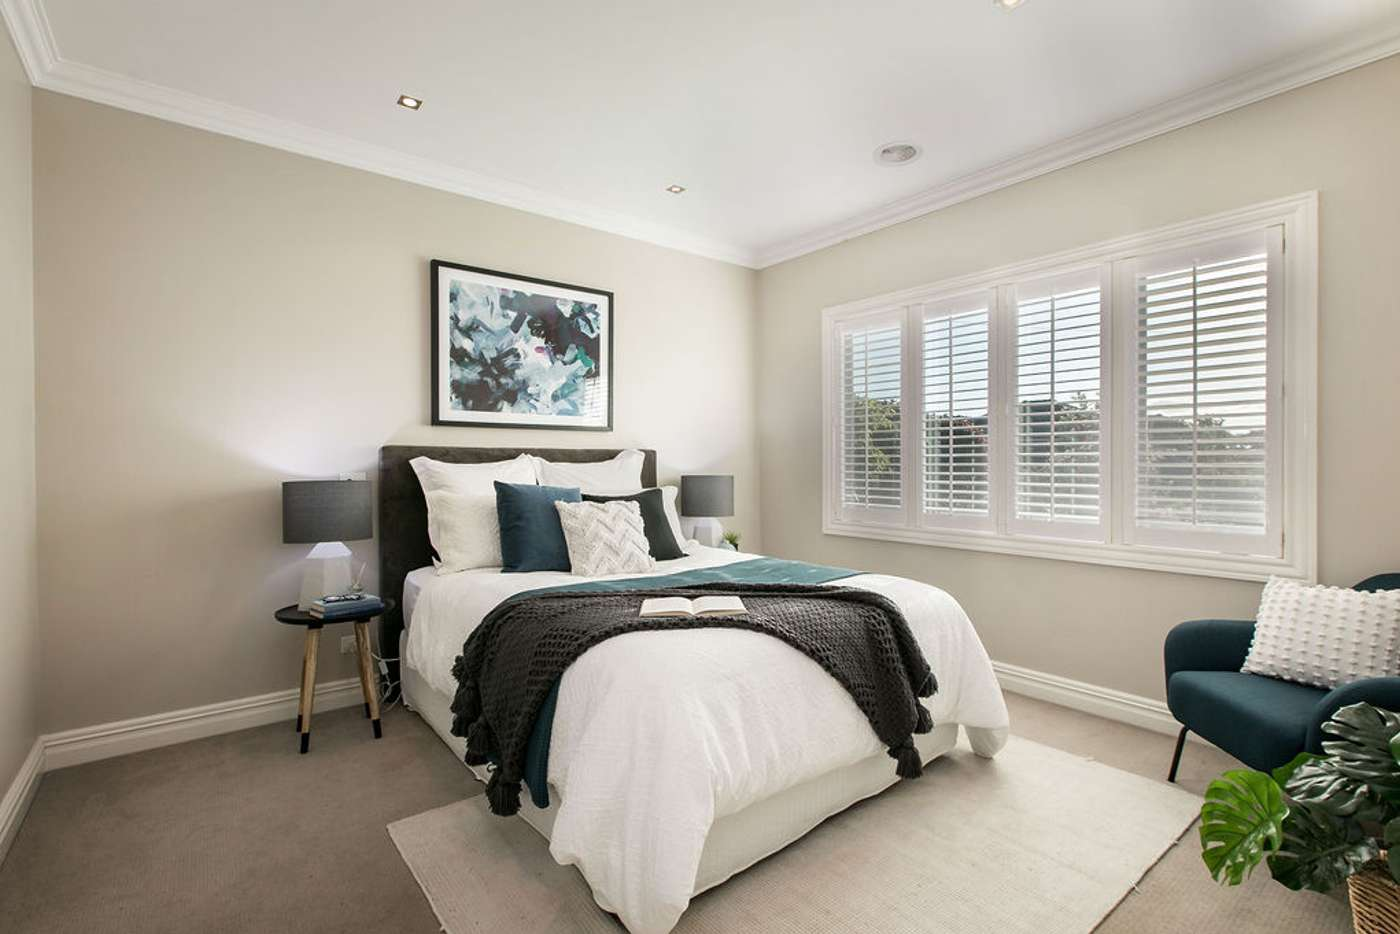 Sixth view of Homely house listing, 62 William Street, Wodonga VIC 3690